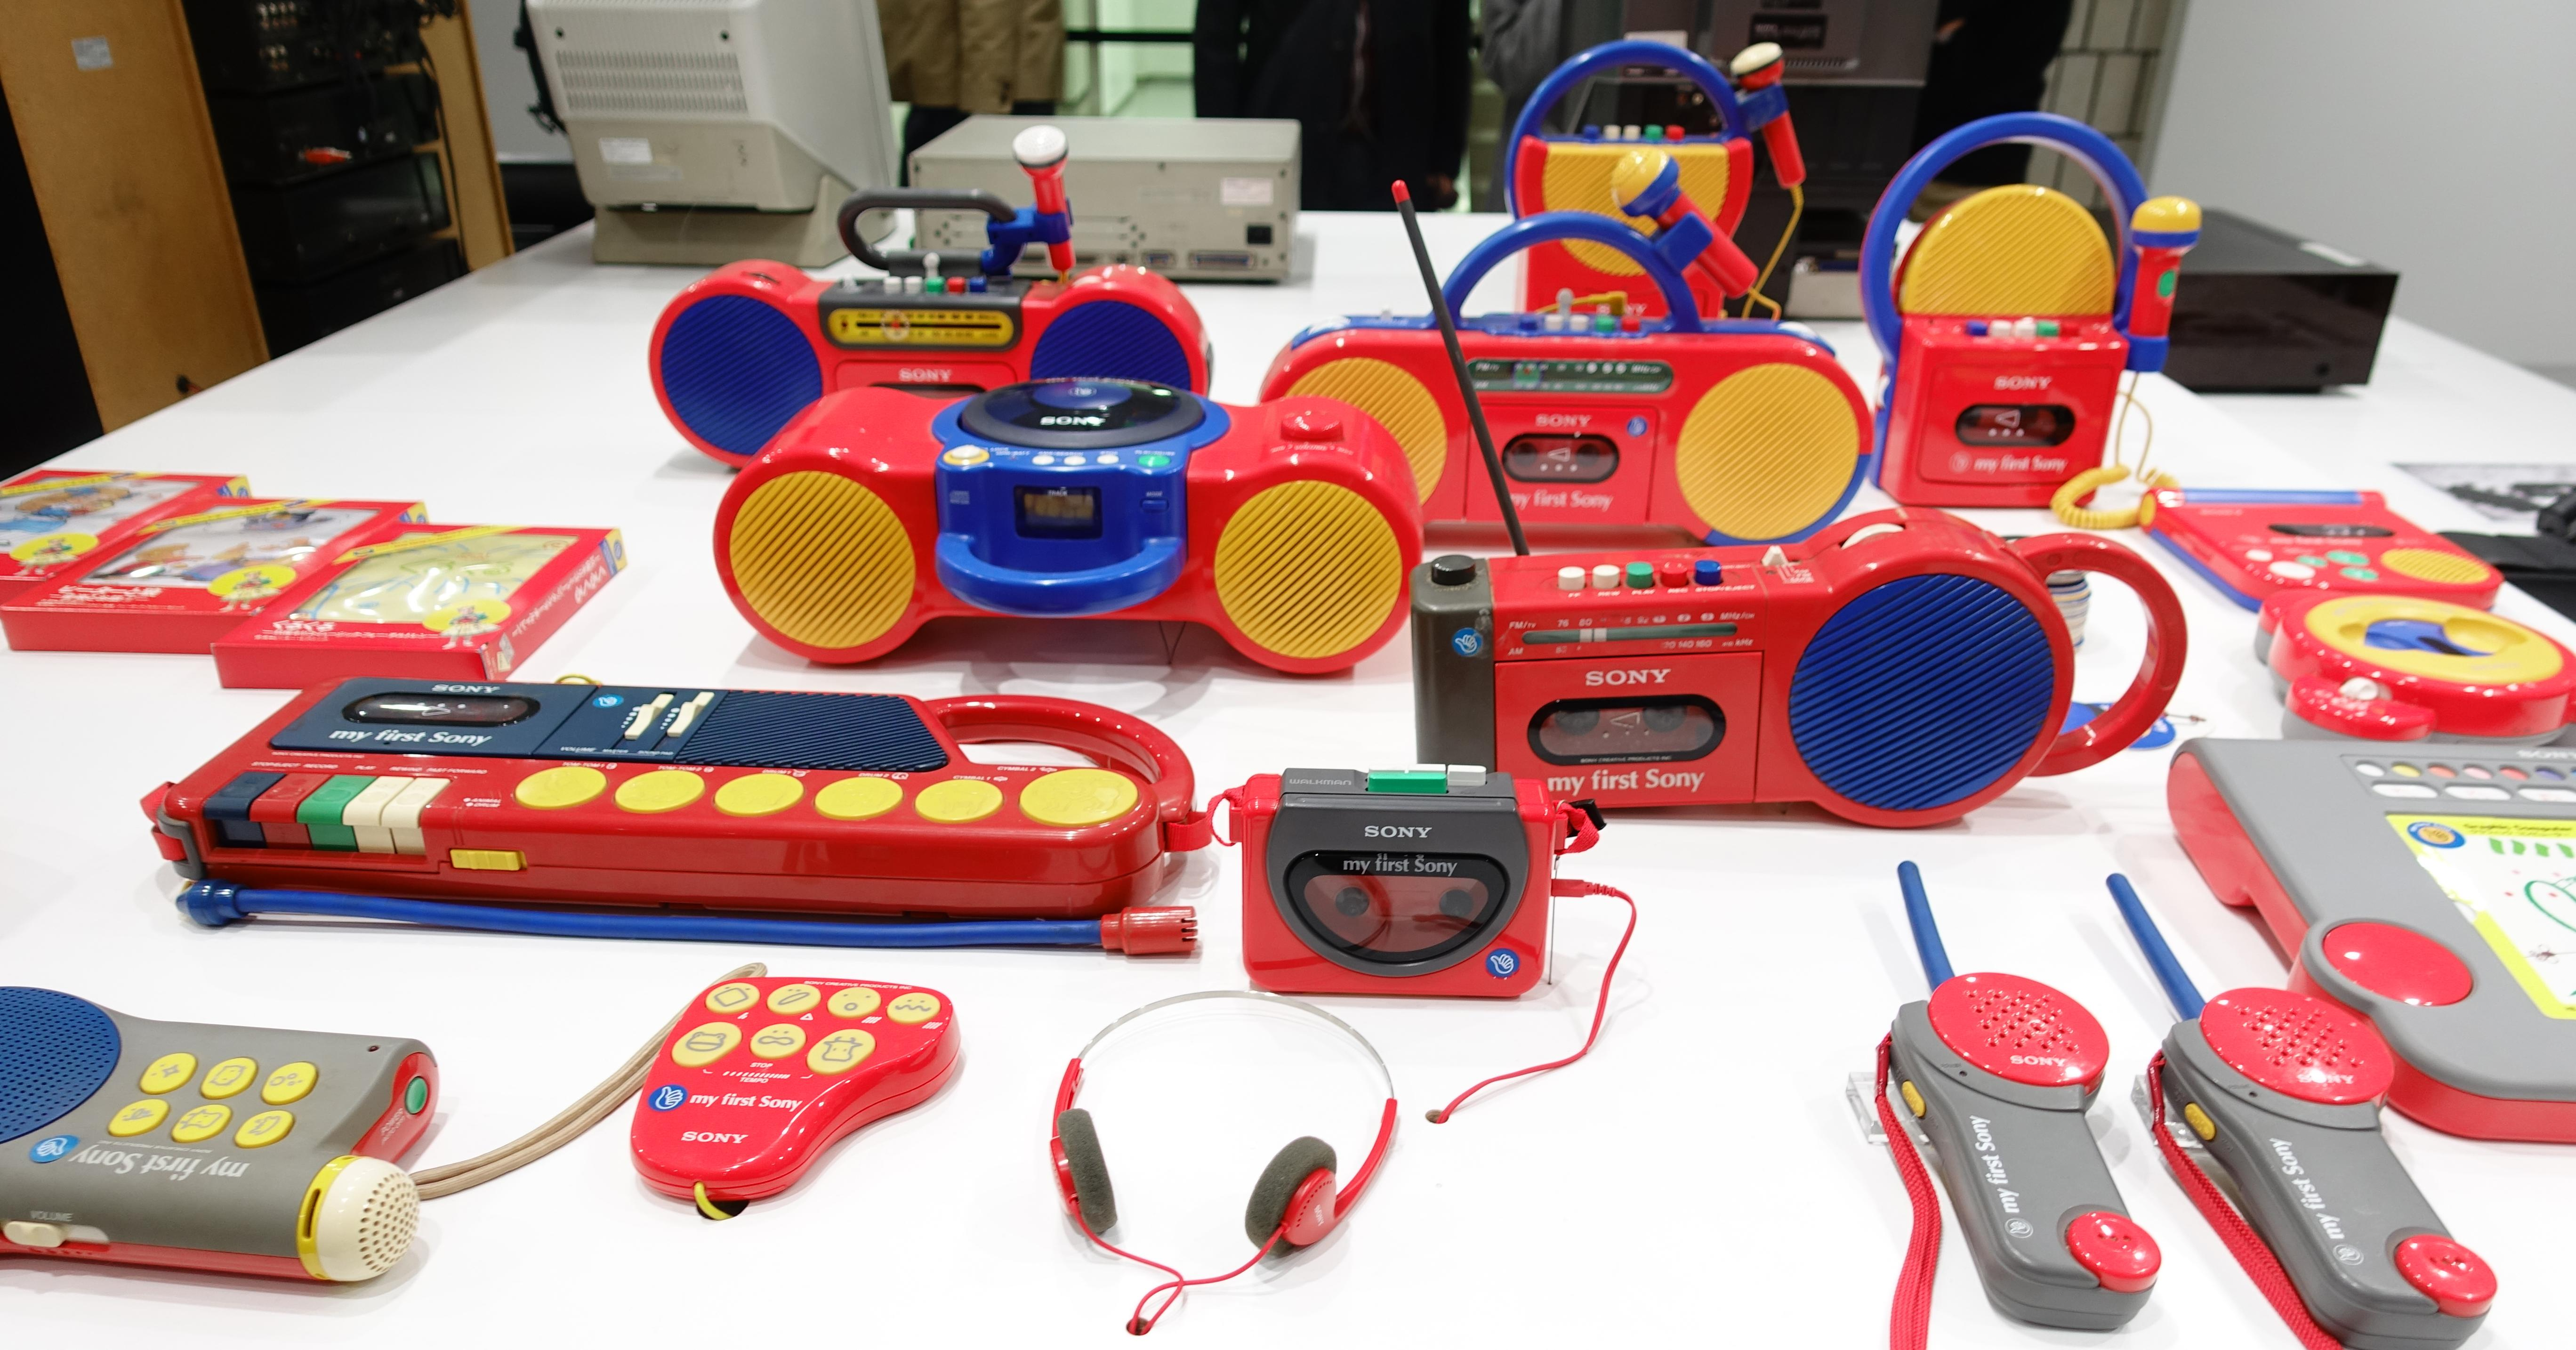 Array of My First Sony products on a table, including several tape players, walkie-talkies and a pair of headphones.